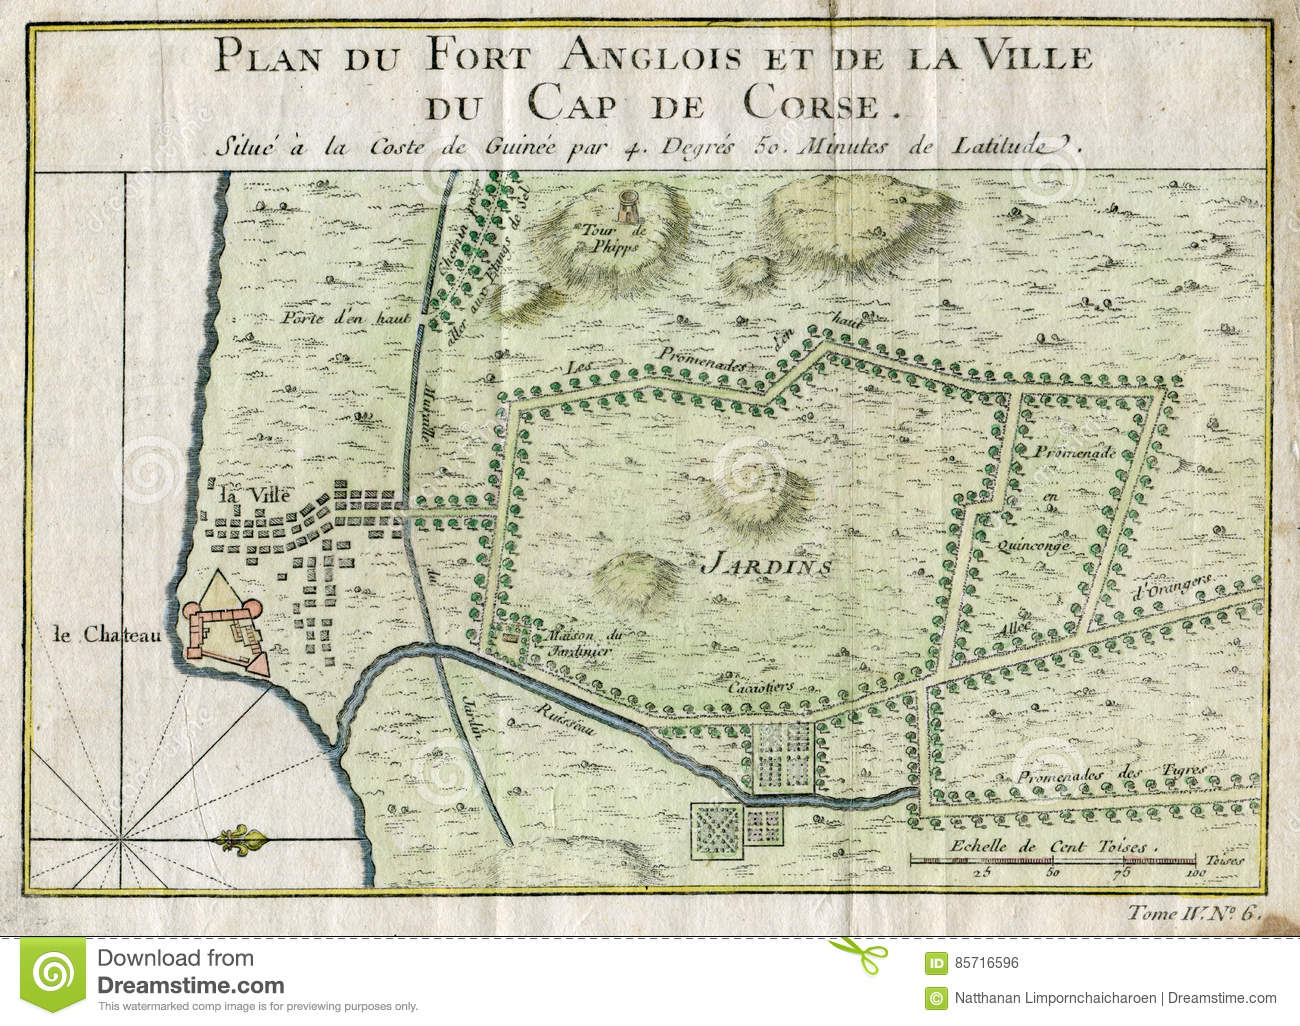 Anglois old plan cap corse ghana fort anglois 1750 editorial photo